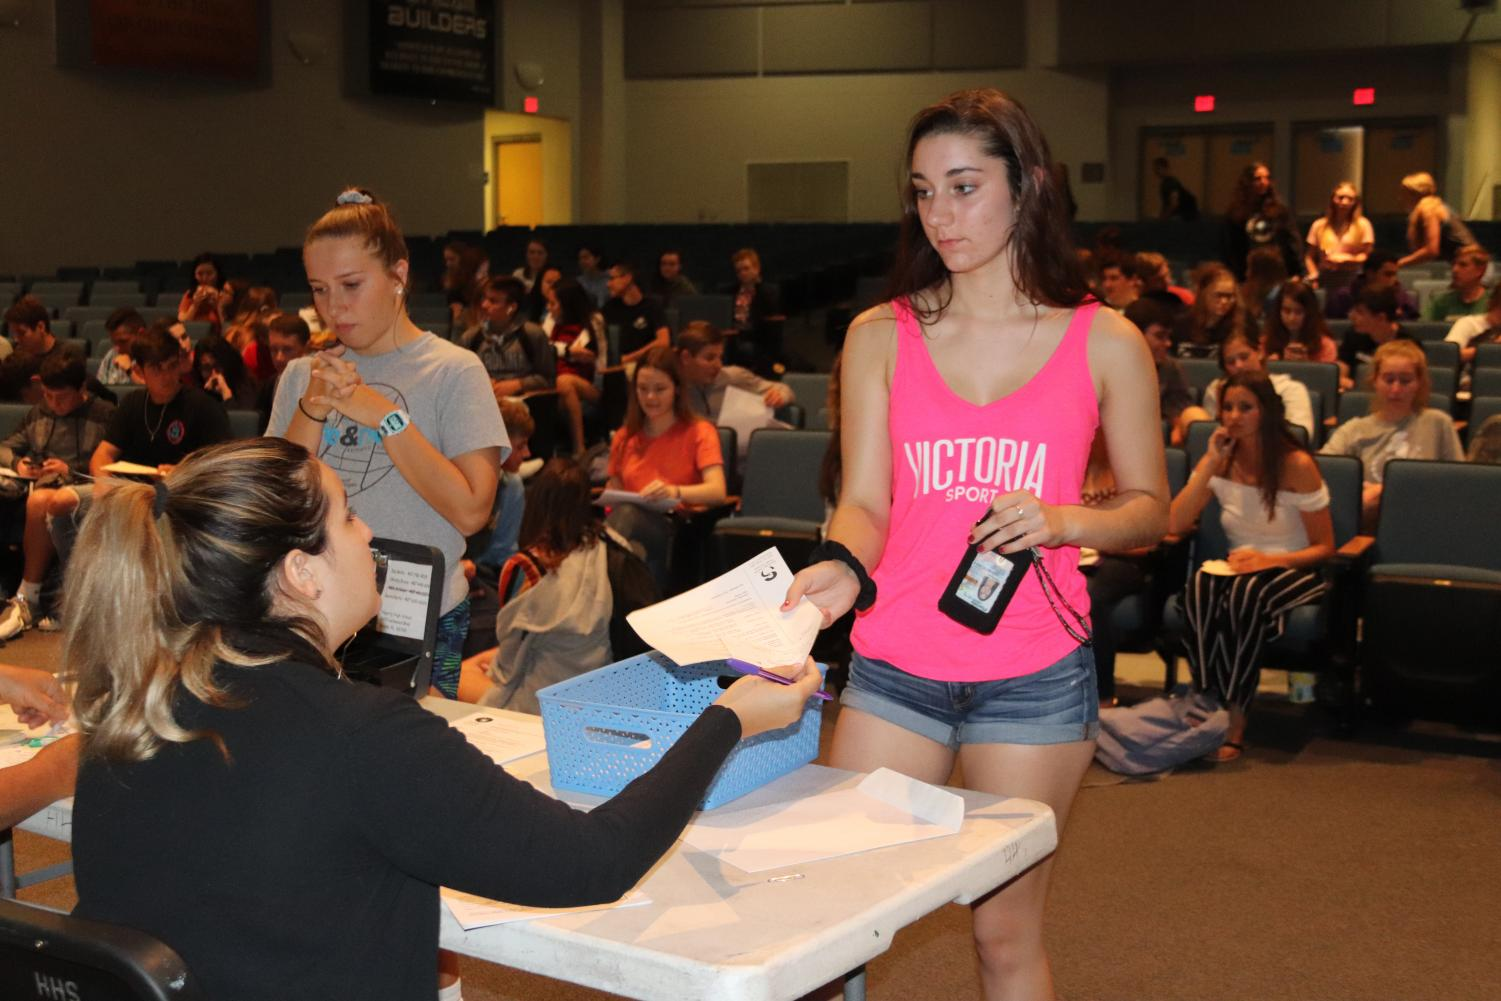 Sophomores Victoria Hayward and Elaina Butler buy their parking passes in the auditorium.